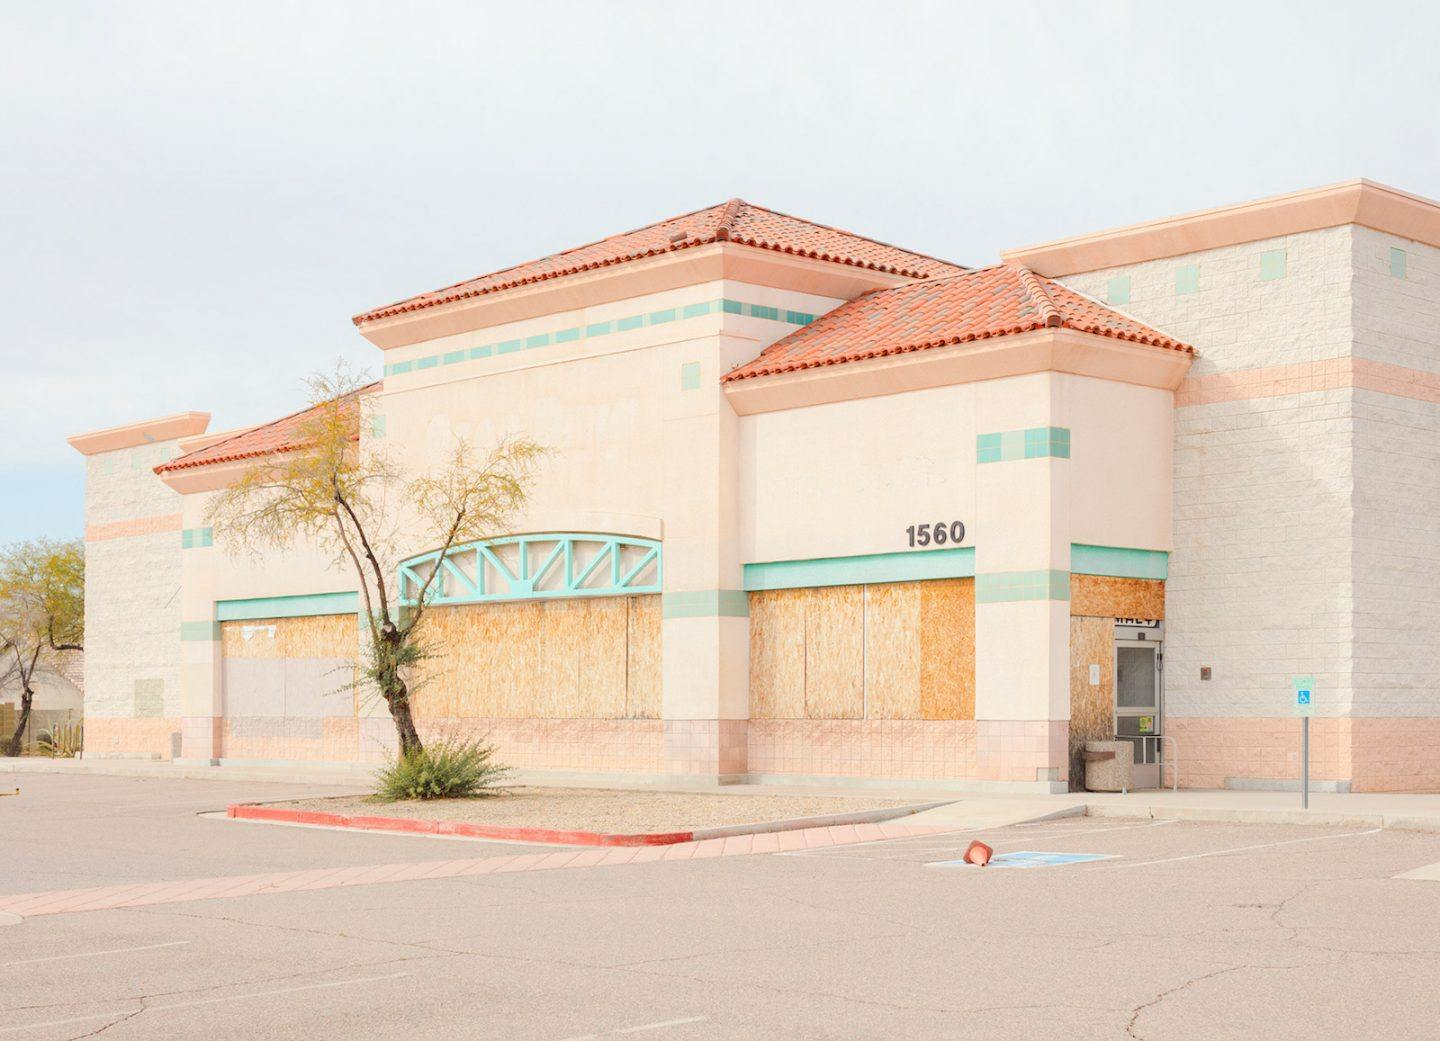 iGNANT-Photography-Jesse-Rieser-The-Retail-Apocalypse-004